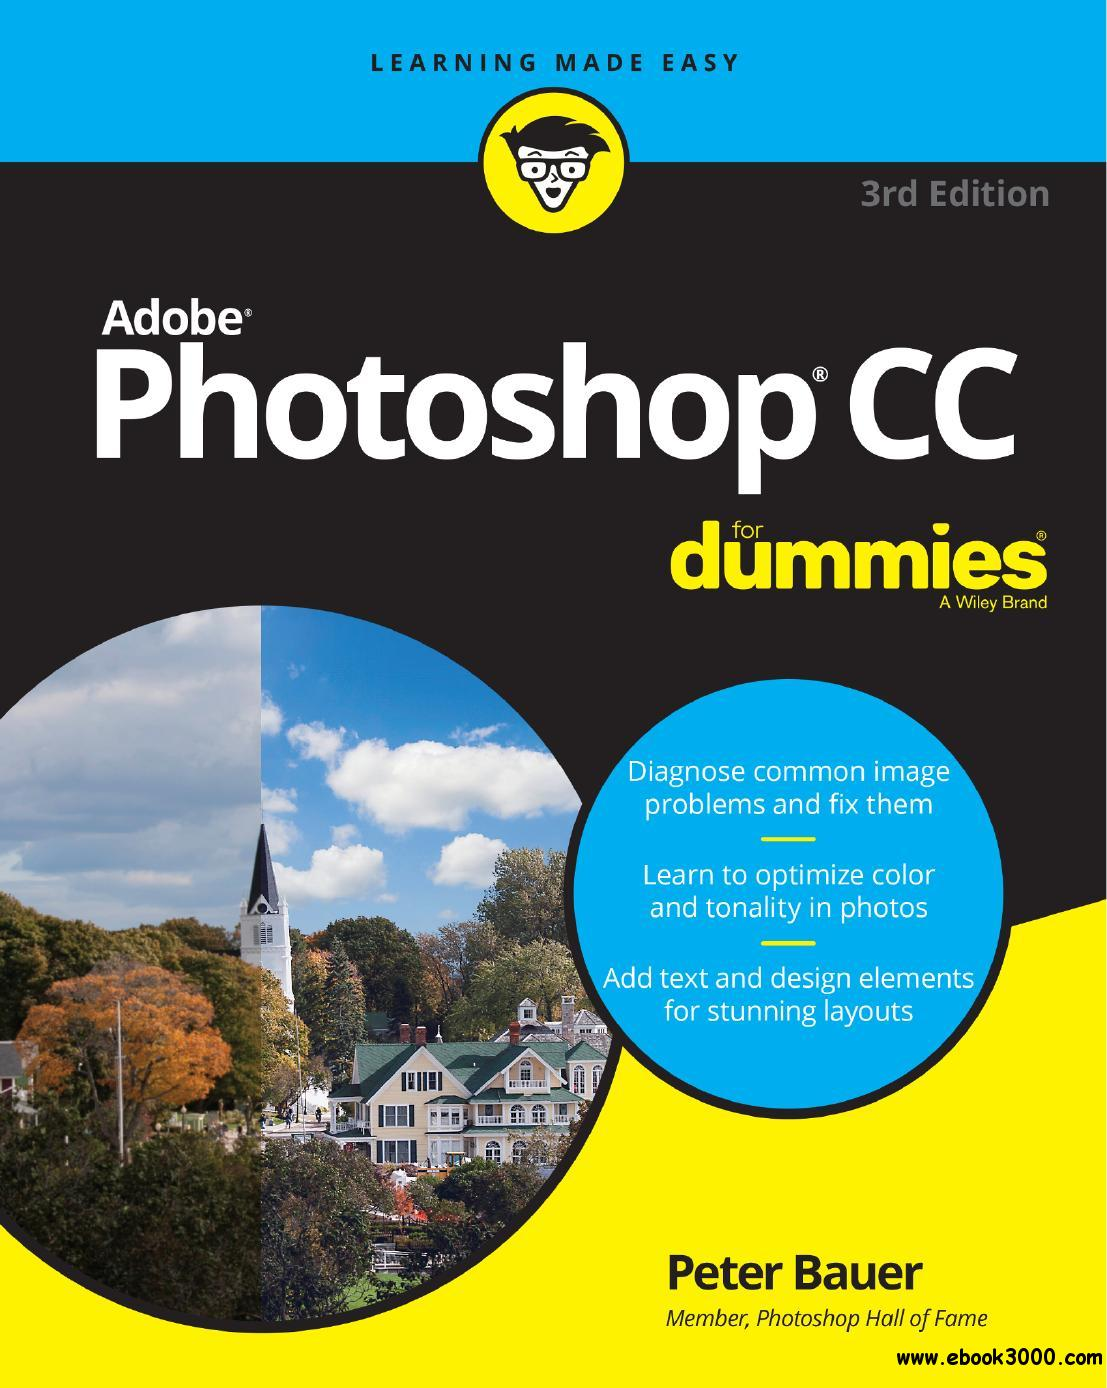 Adobe Photoshop CC For Dummies, 3rd Edition